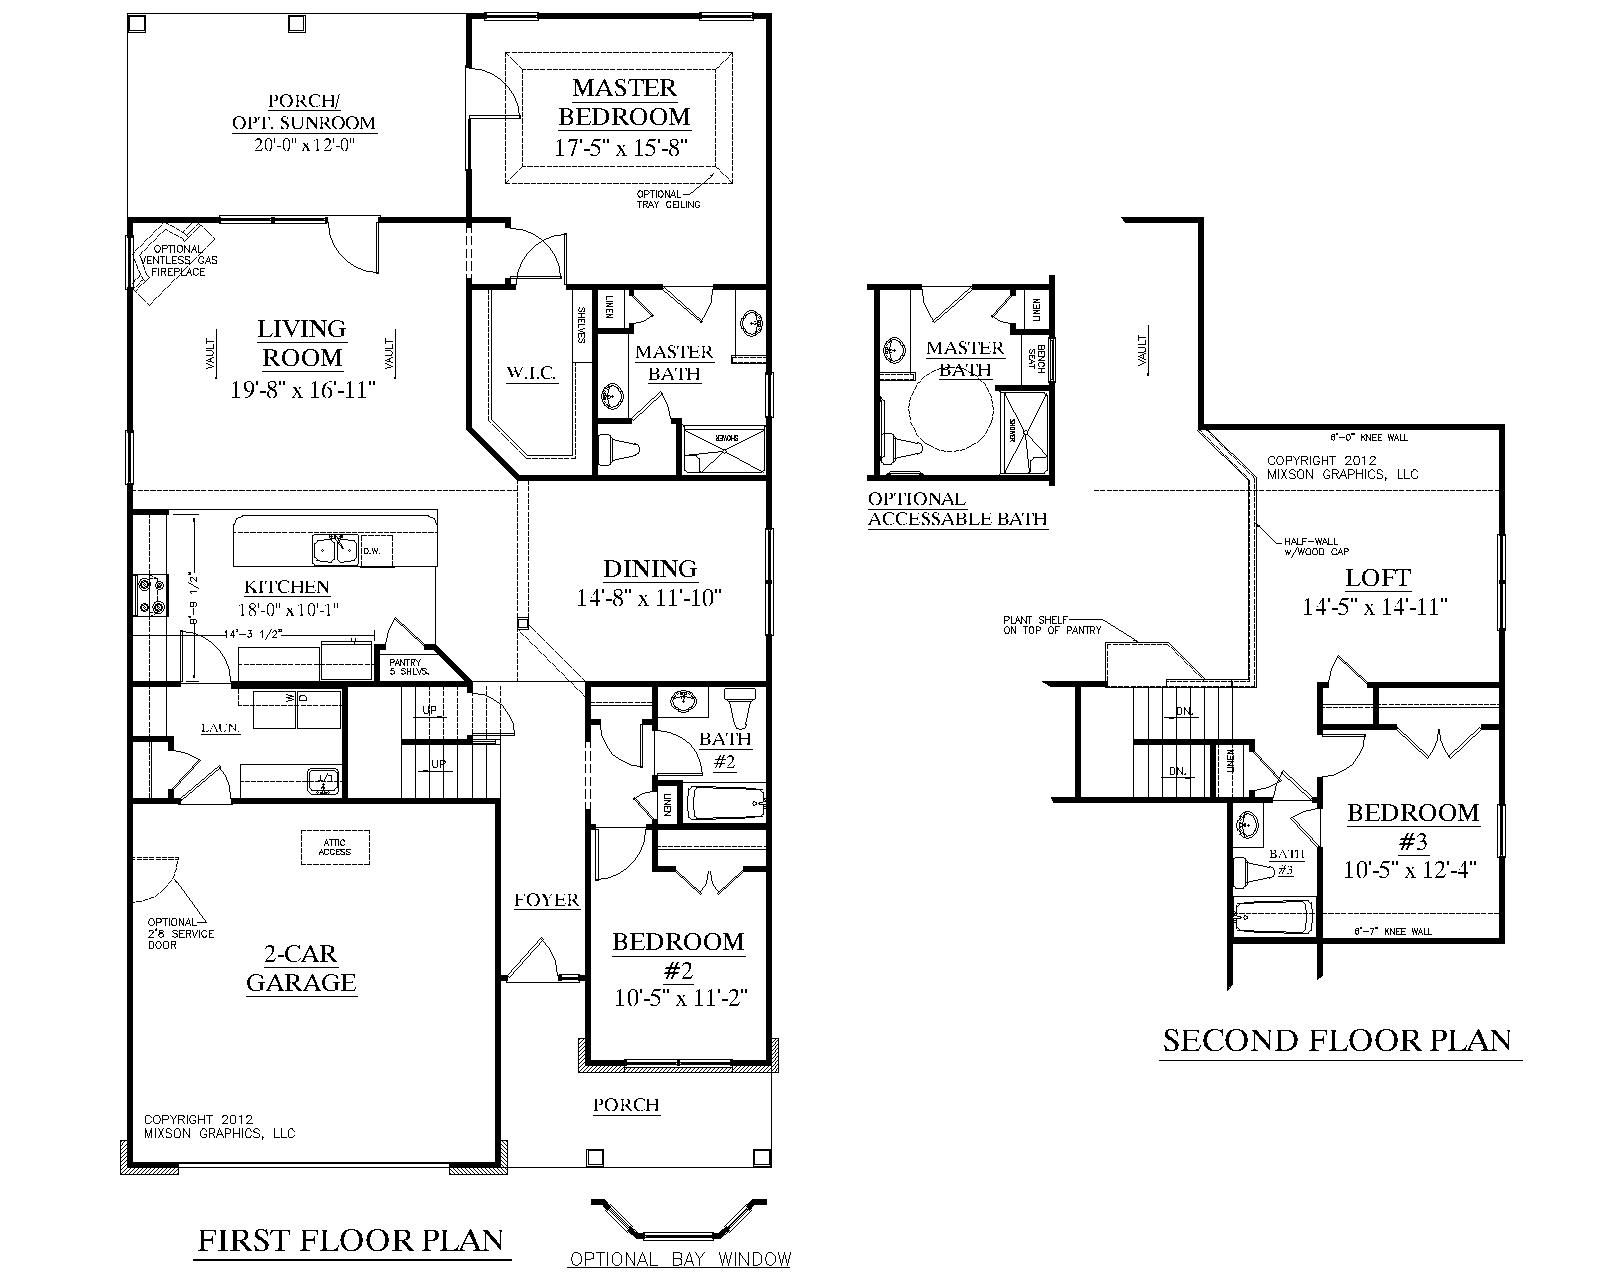 House plan 2224 kingstree floor plan traditional 1 1 2 for 2 story house plan